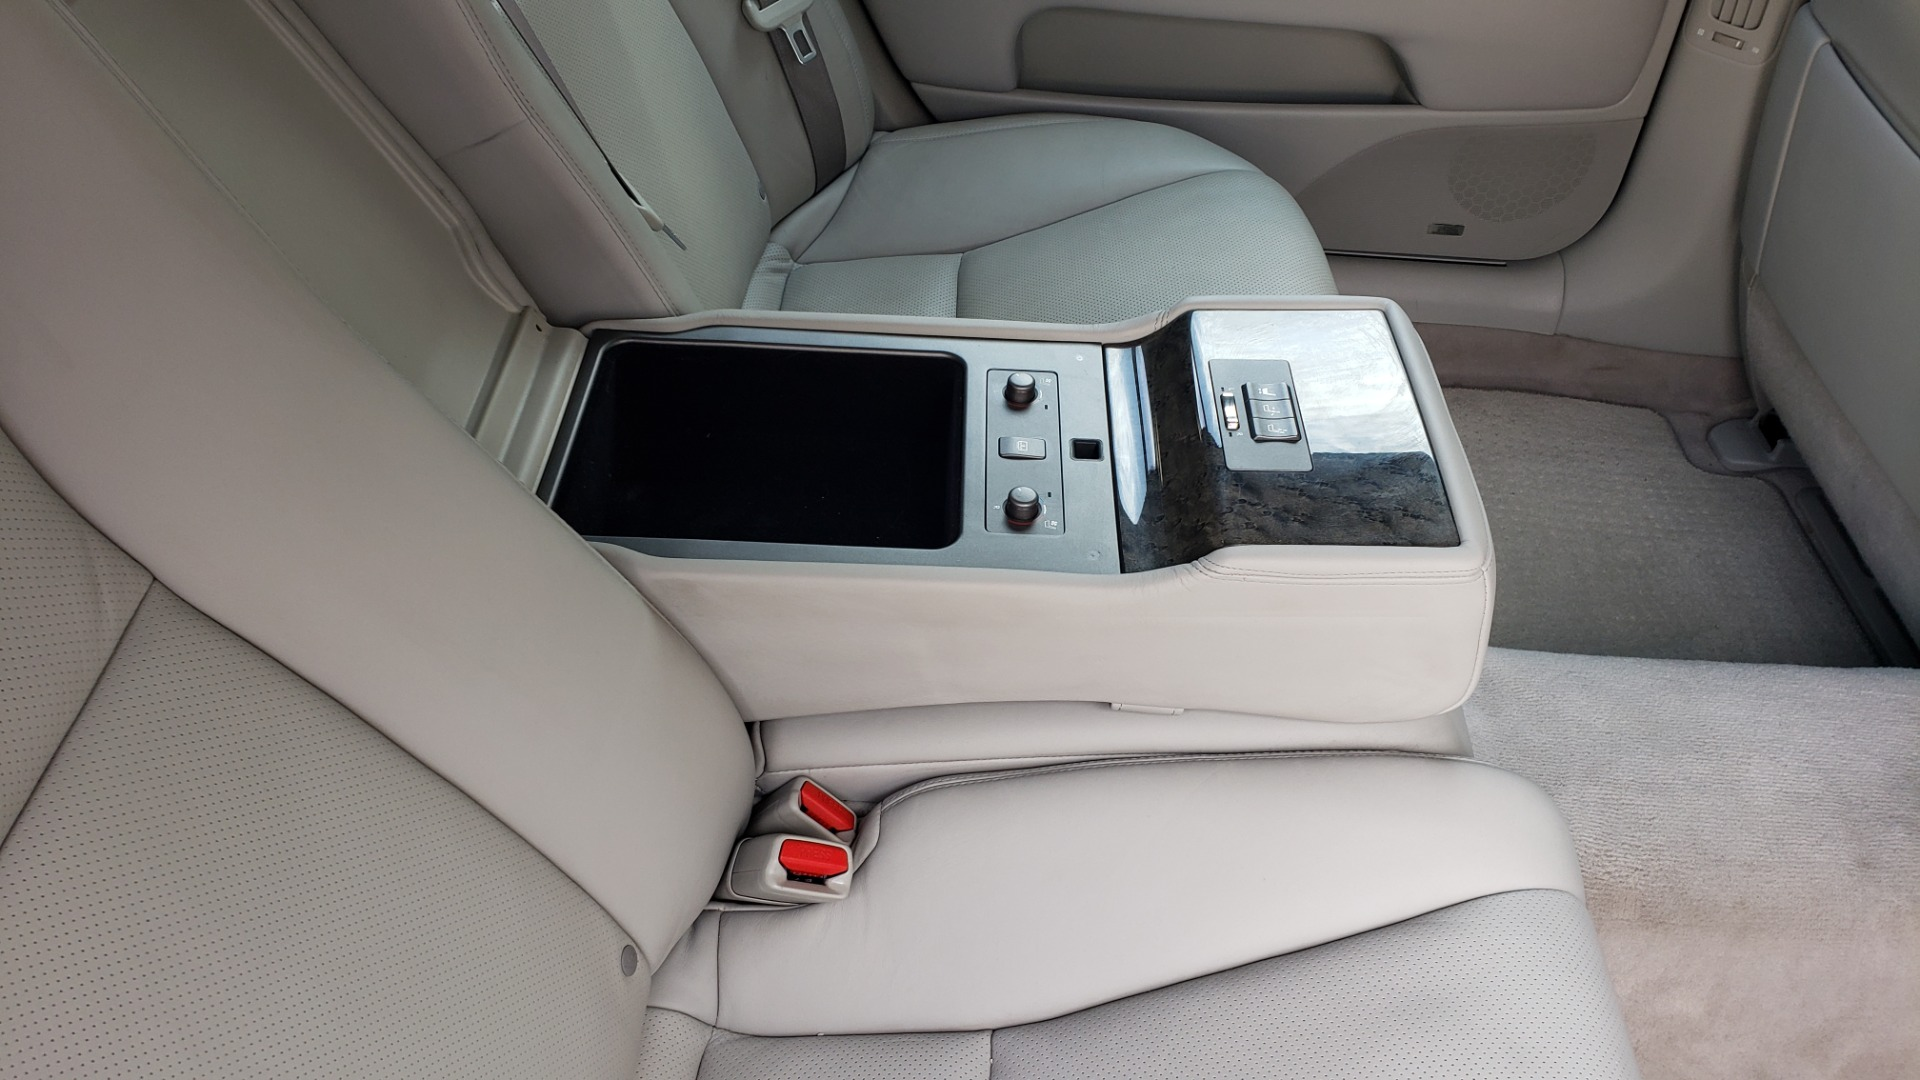 Used 2007 Lexus LS 460 LWB / LUX / NAV / SUNROOF / MARK LEVINSON SND / AIR SUSP for sale Sold at Formula Imports in Charlotte NC 28227 76